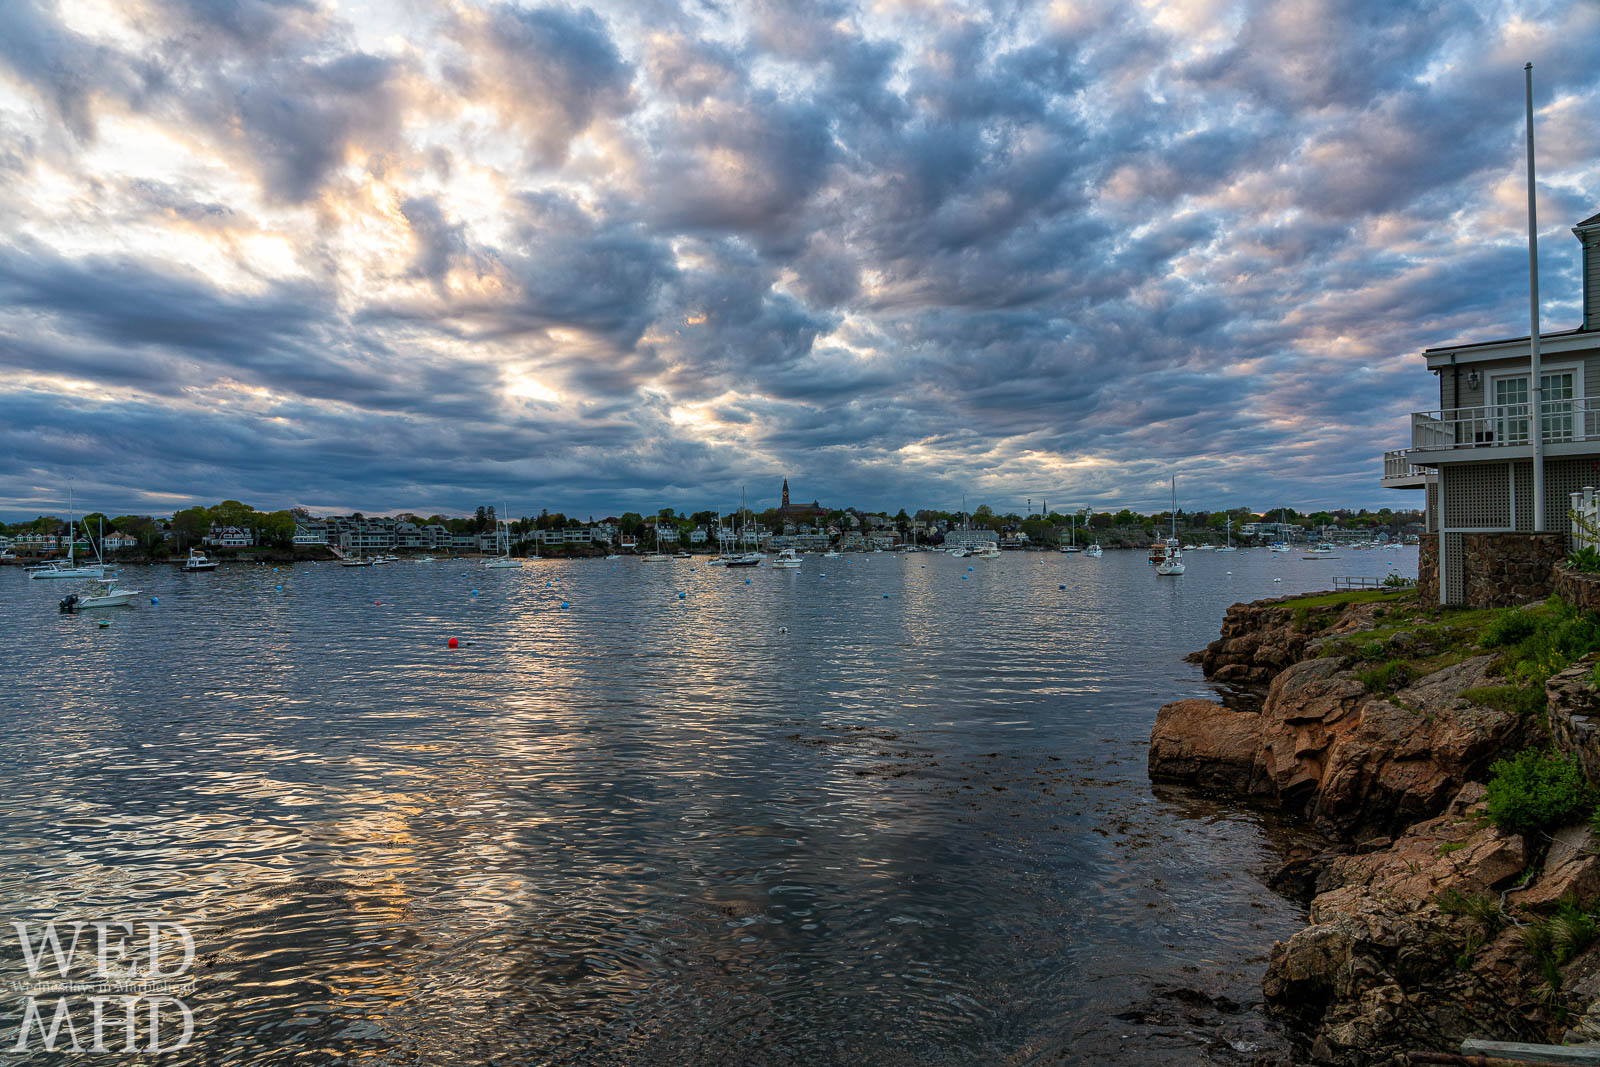 View of a cloudy evening at the end of Parker Lane features a home on a rocky outcropping and light reflecting in the water of Marblehead harbor